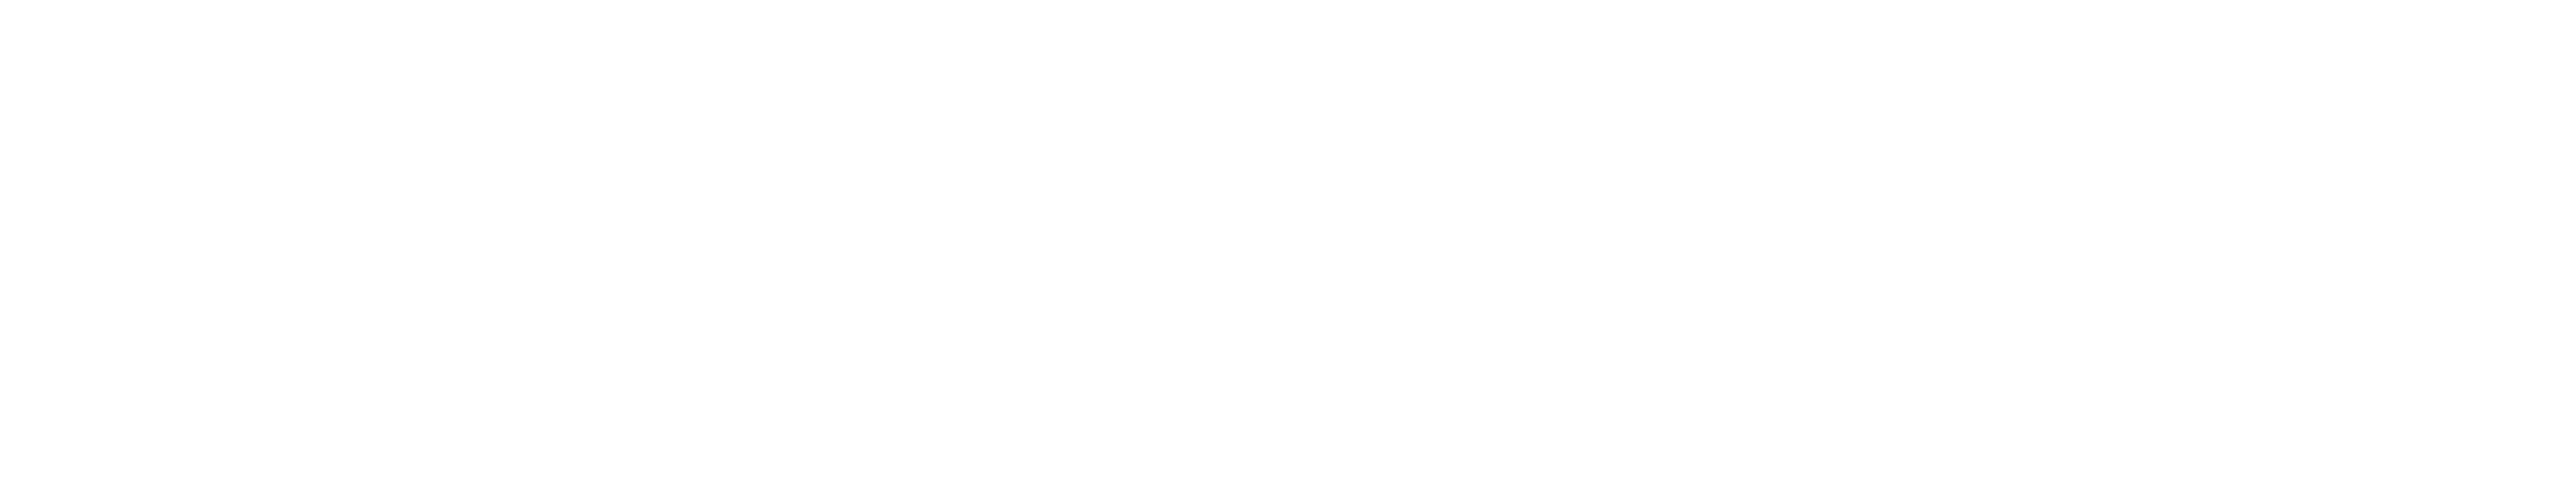 Pennsylvania Farmers Union